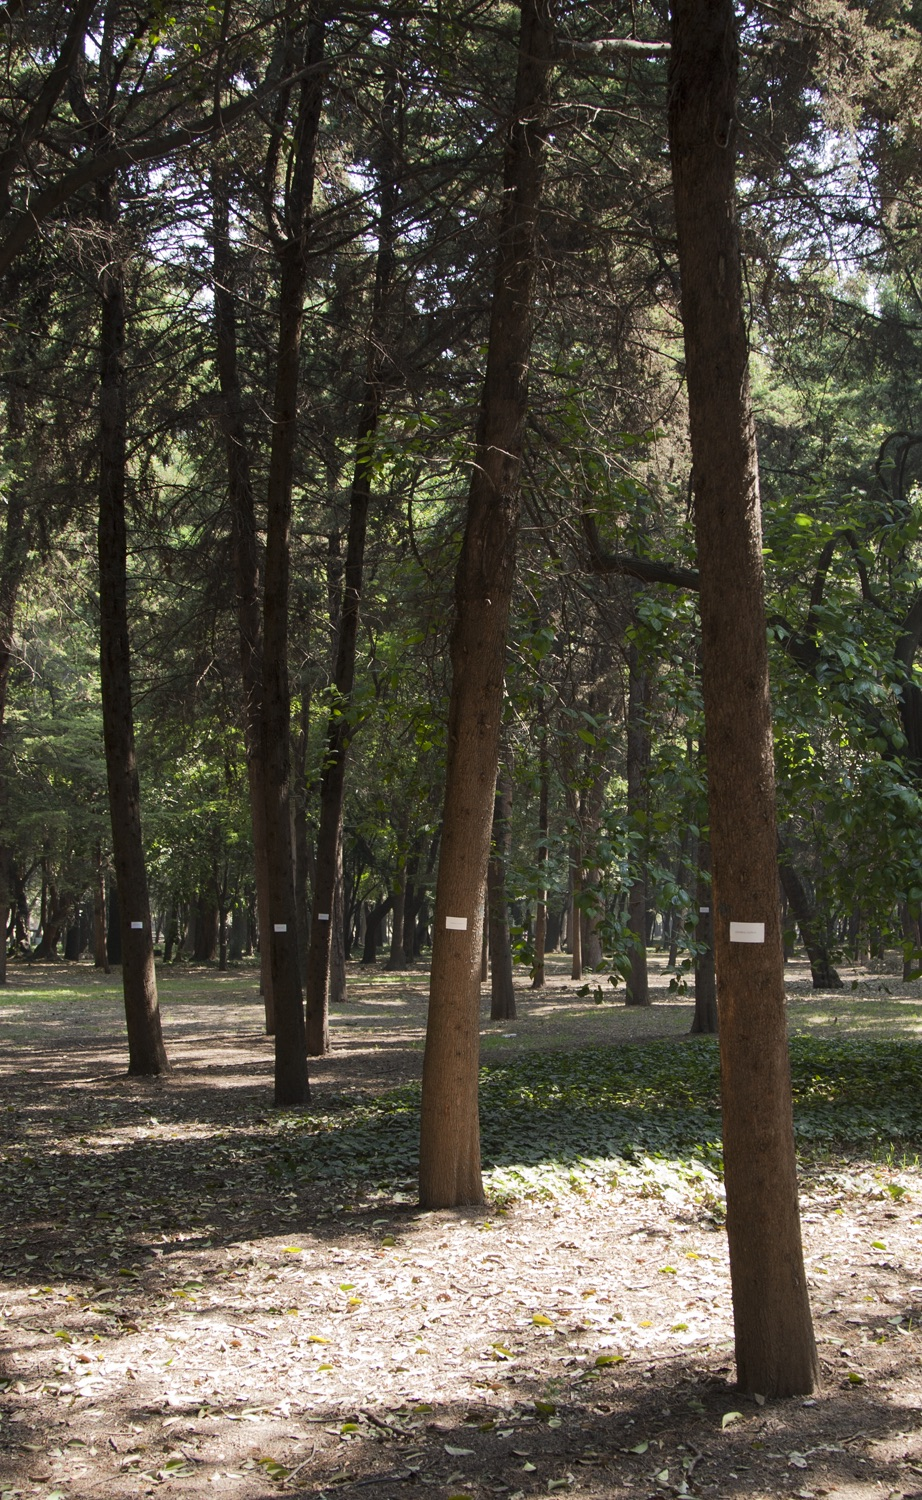 bosque 1 copia.jpg